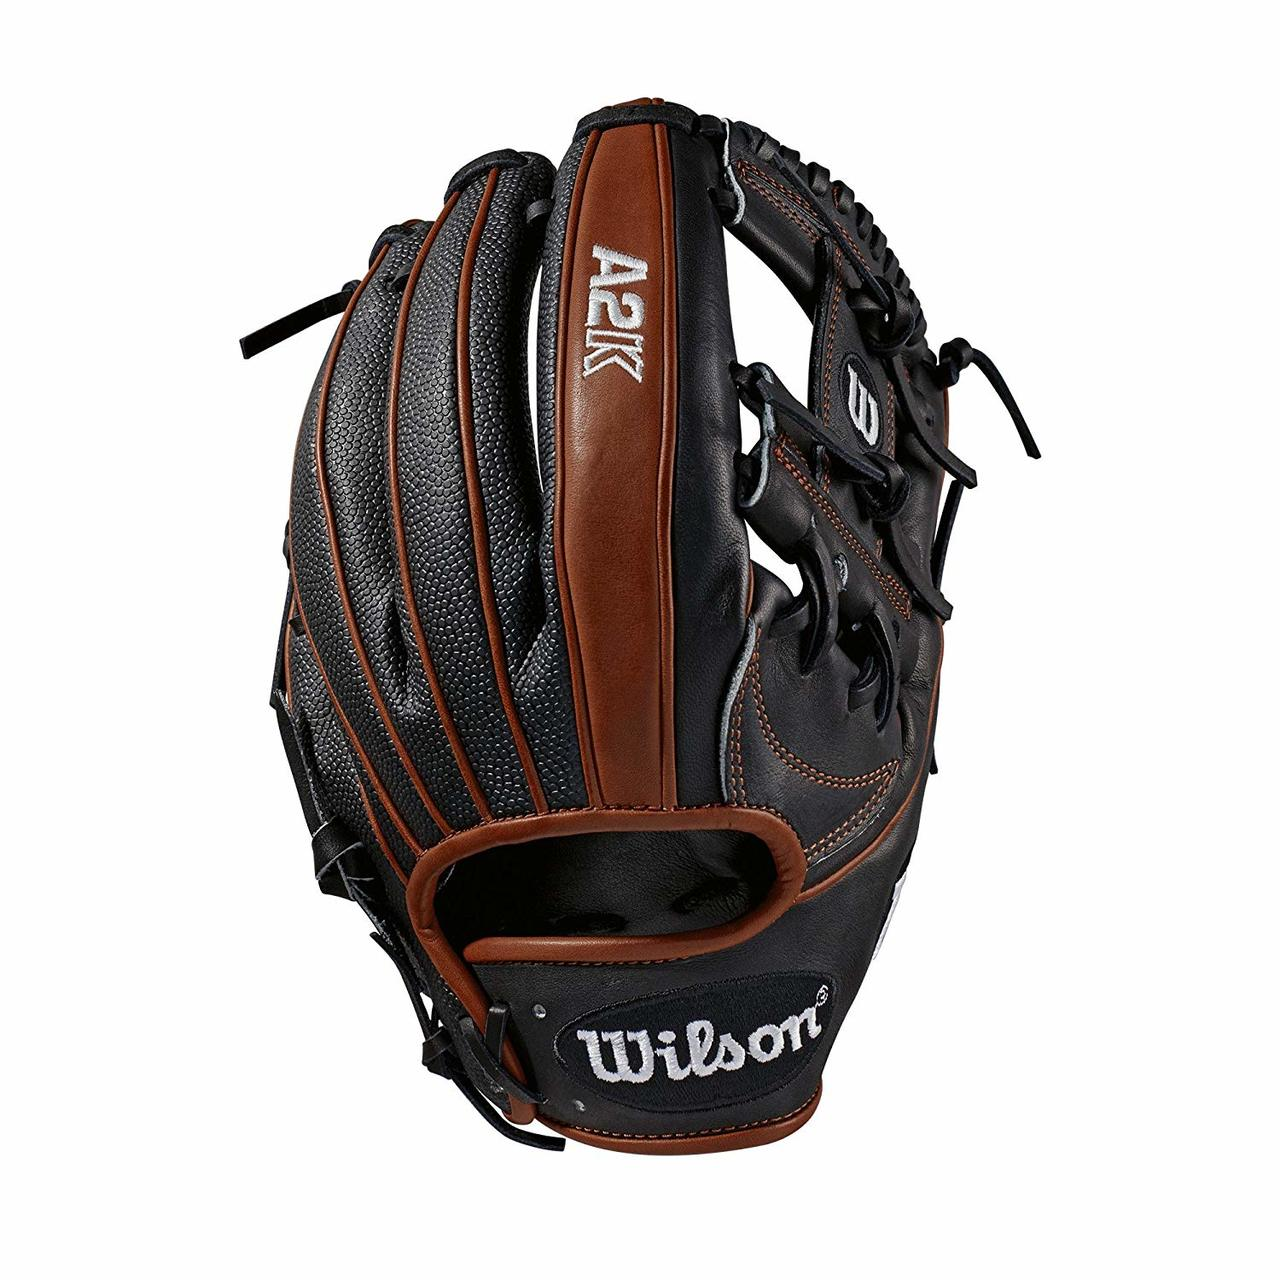 wilson-a2k-baseball-glove-1787ss-right-hand-throw-11-75-2019 WTA2KRB191787SS-RightHandThrow Wilson 887768701826 Infield model; H-Web Black SuperSkin twice as strong as regular leather